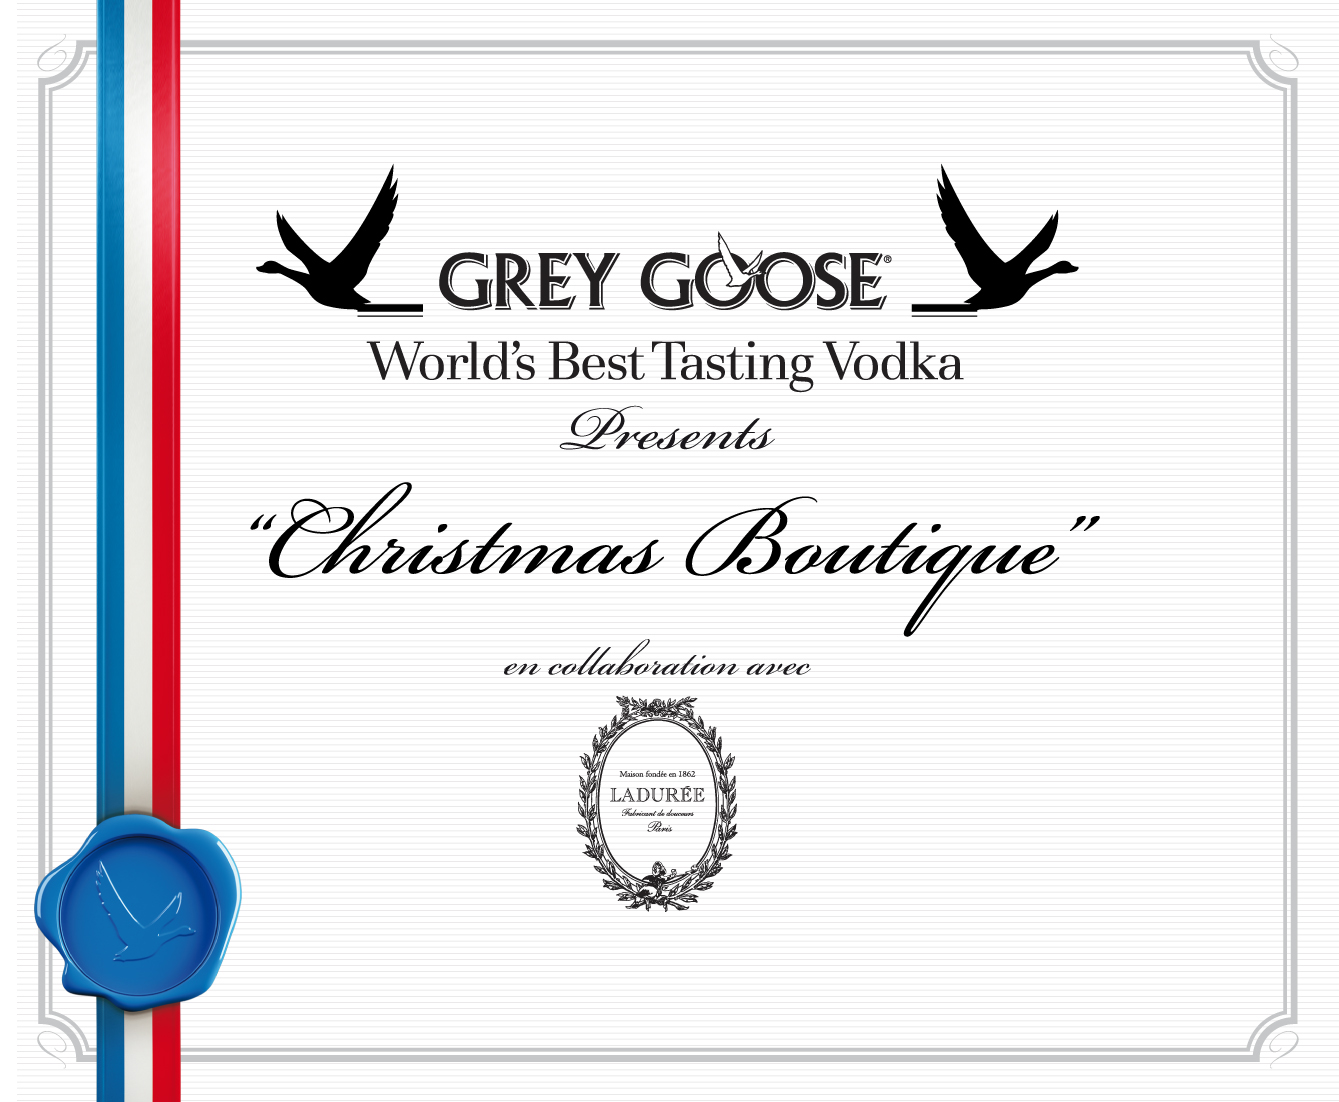 Grey Goose Christmas Boutique 2011